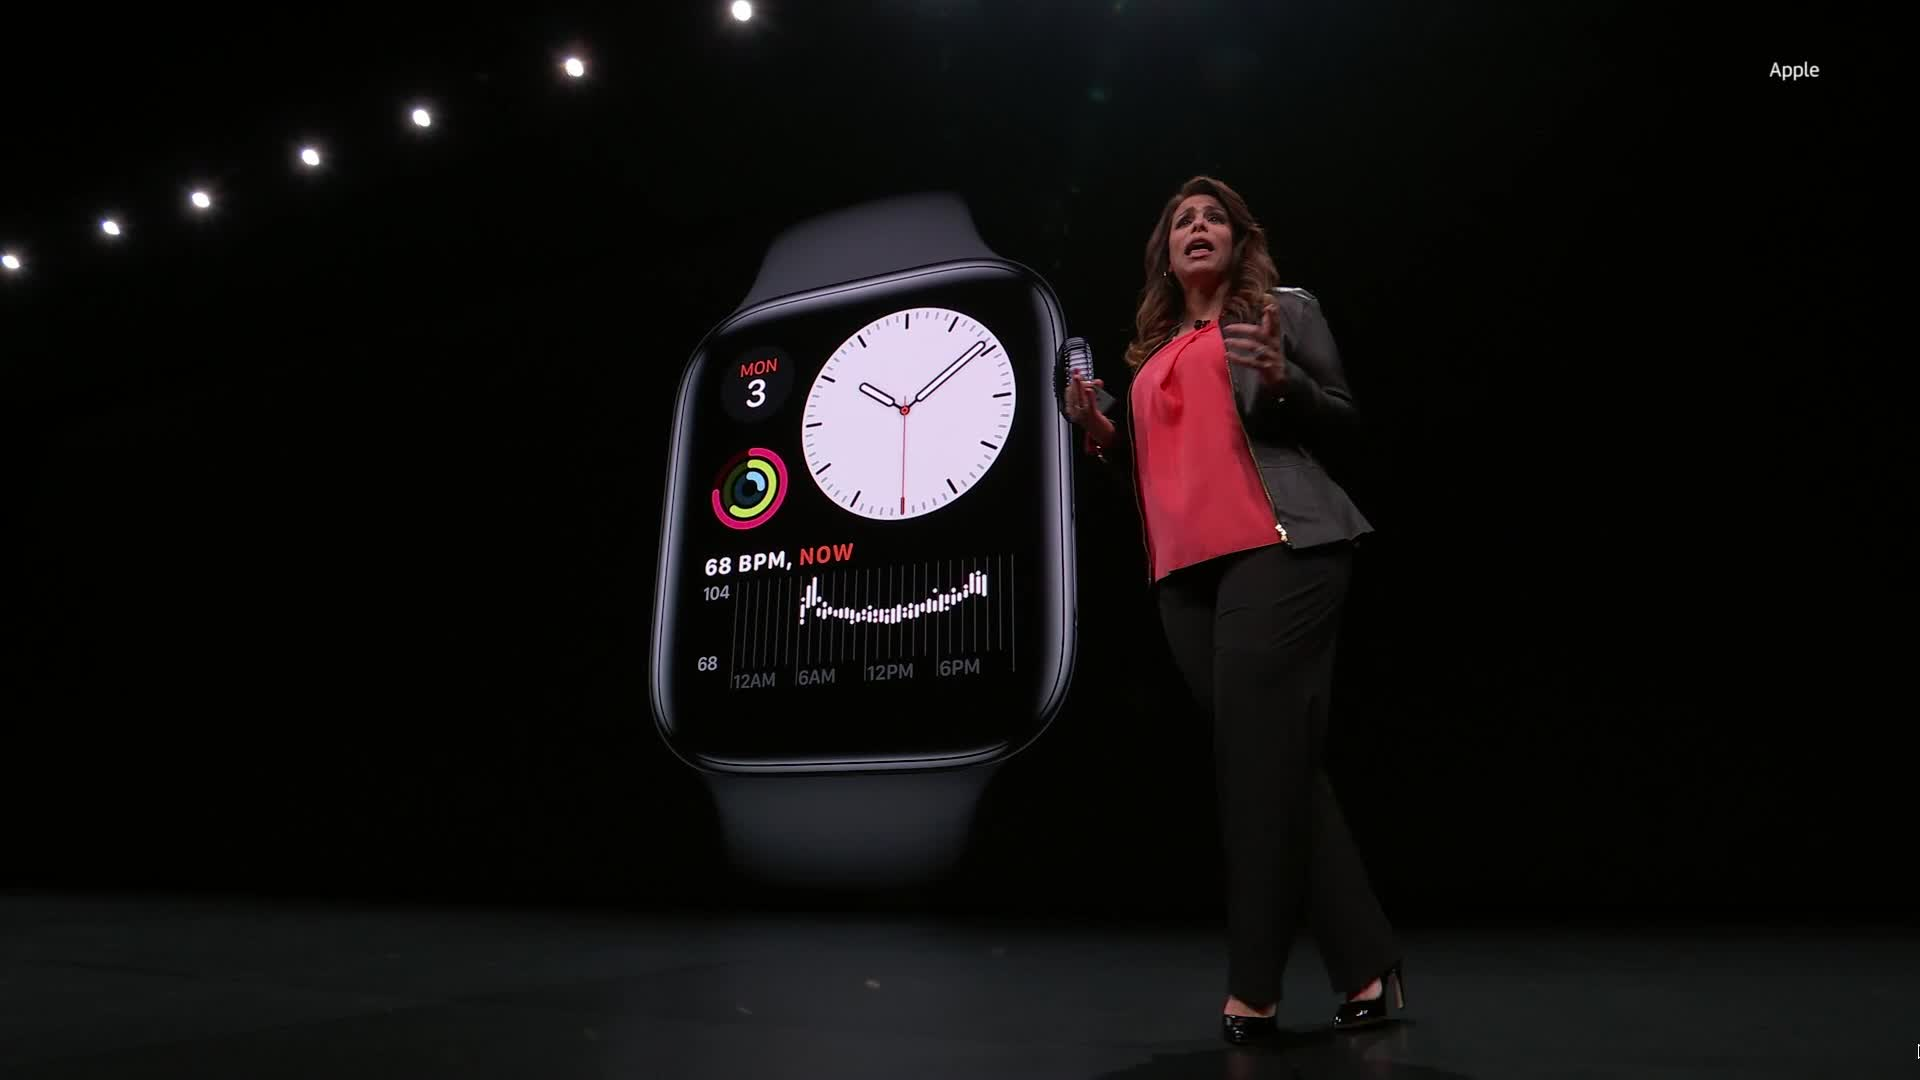 We cut down Apple's 2-hour WWDC keynote to under 30 minutes